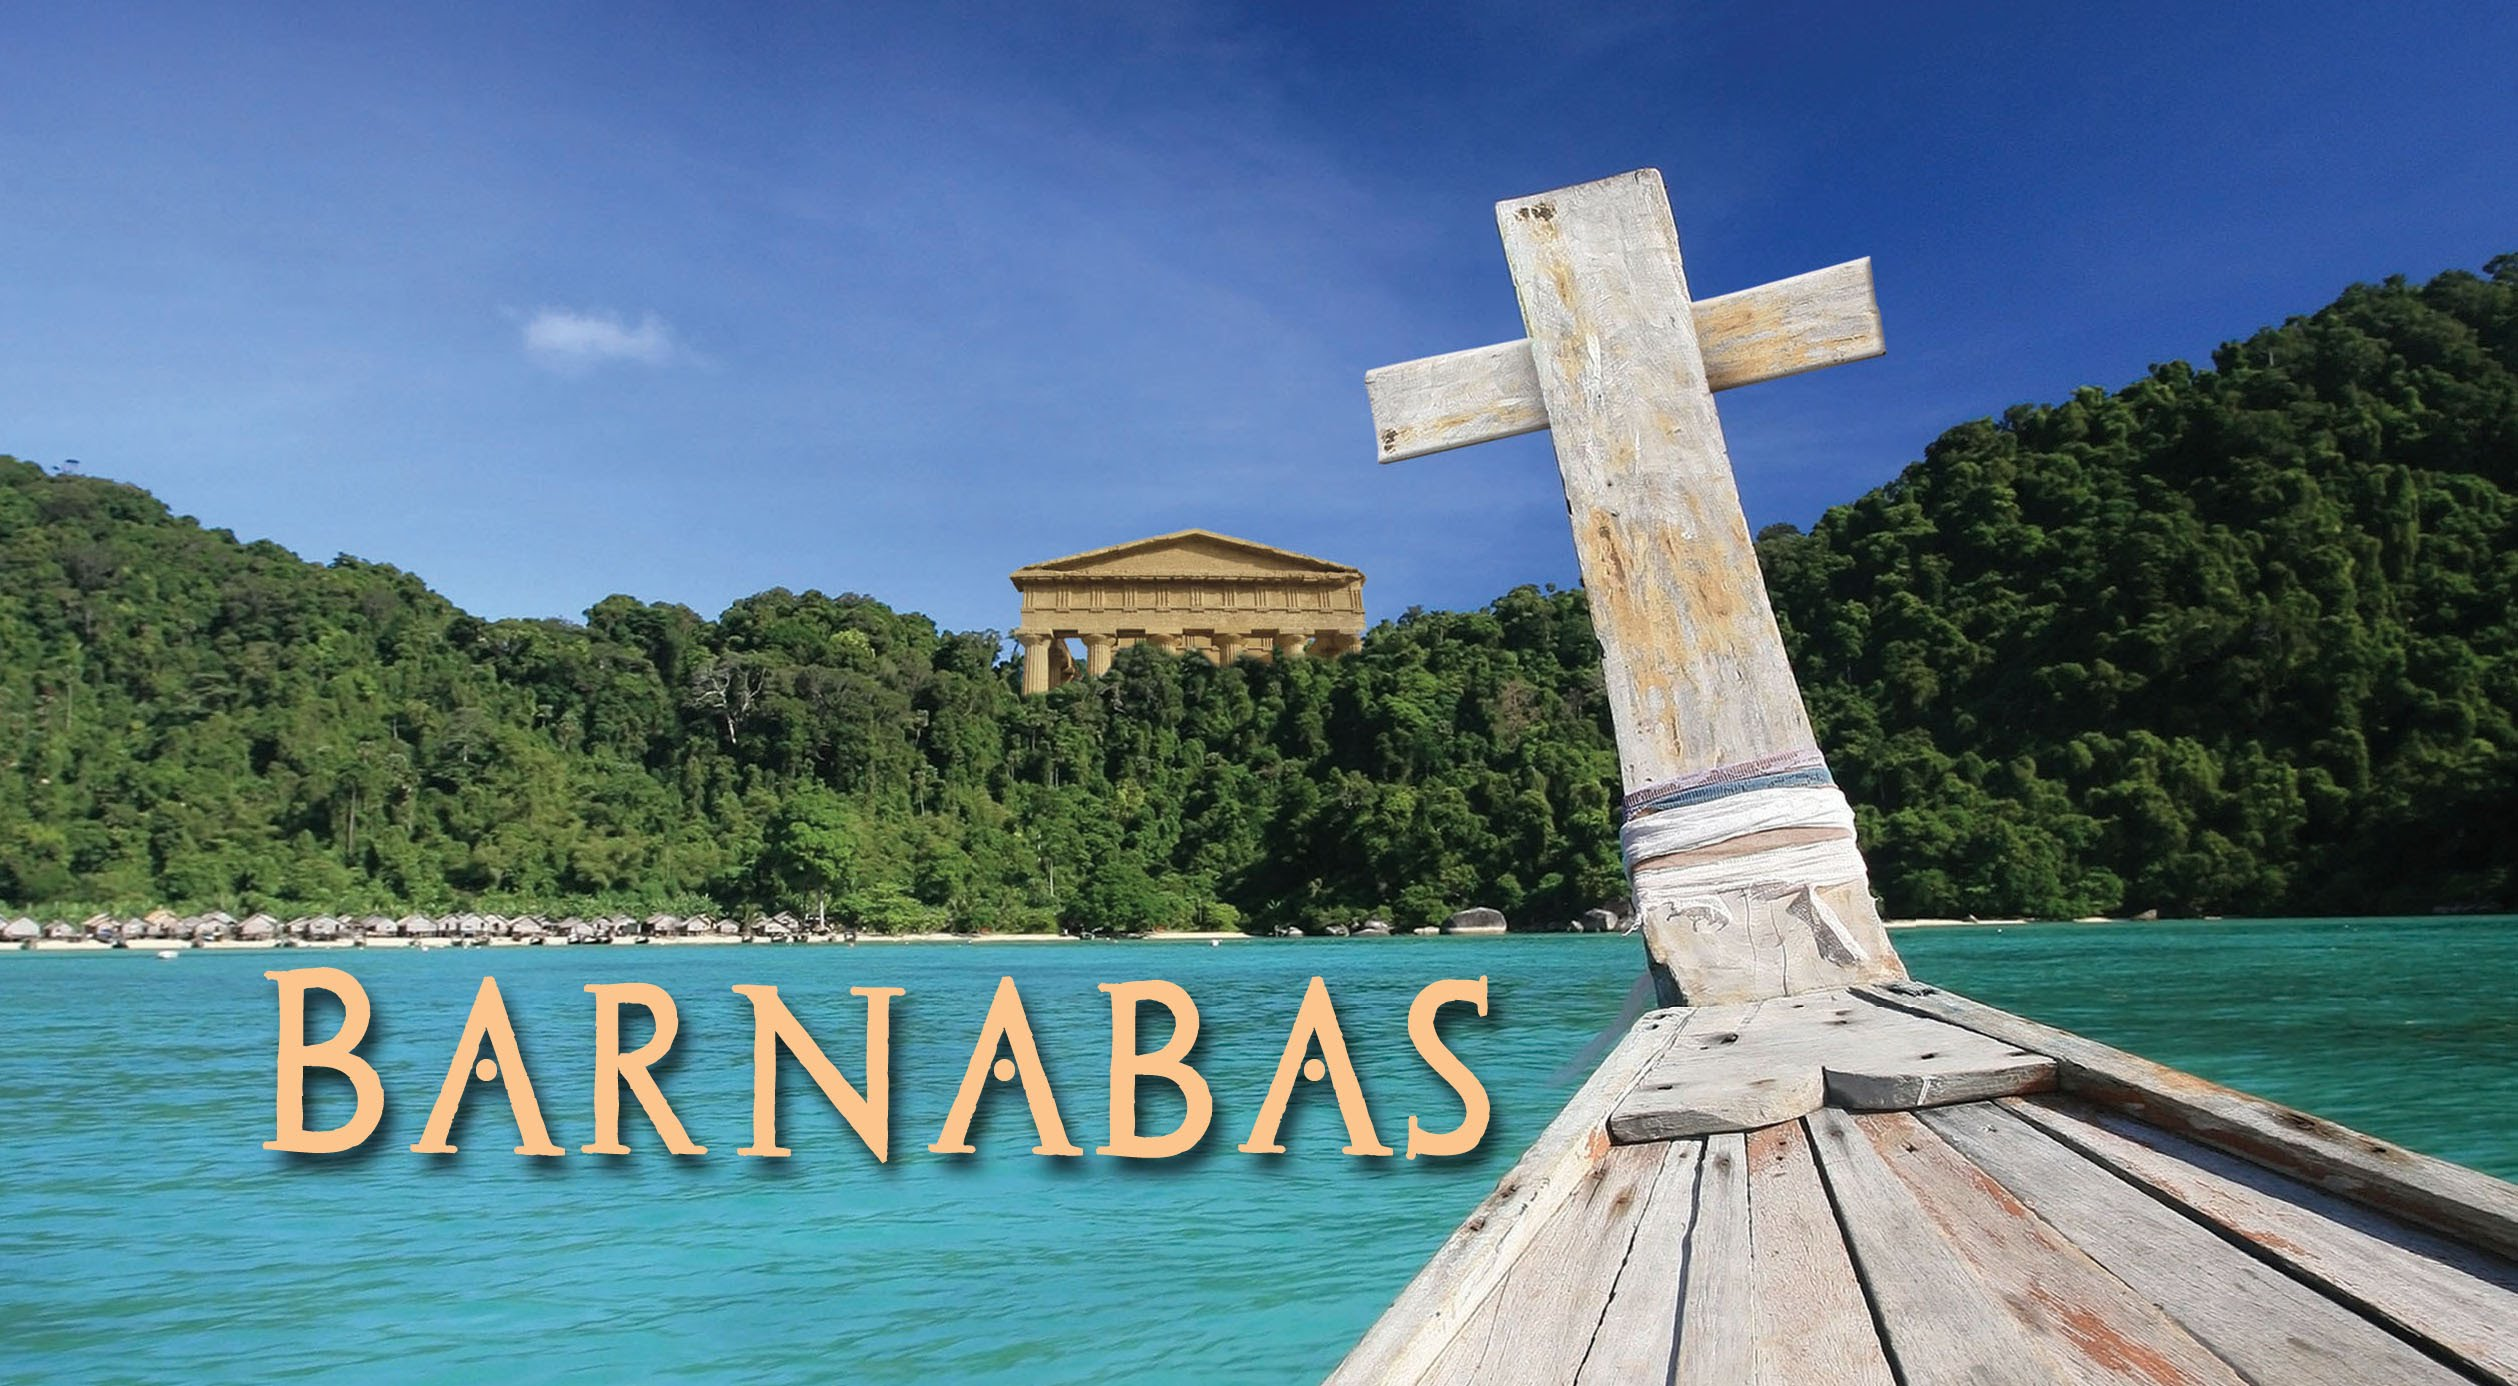 Tickets for Barnabas